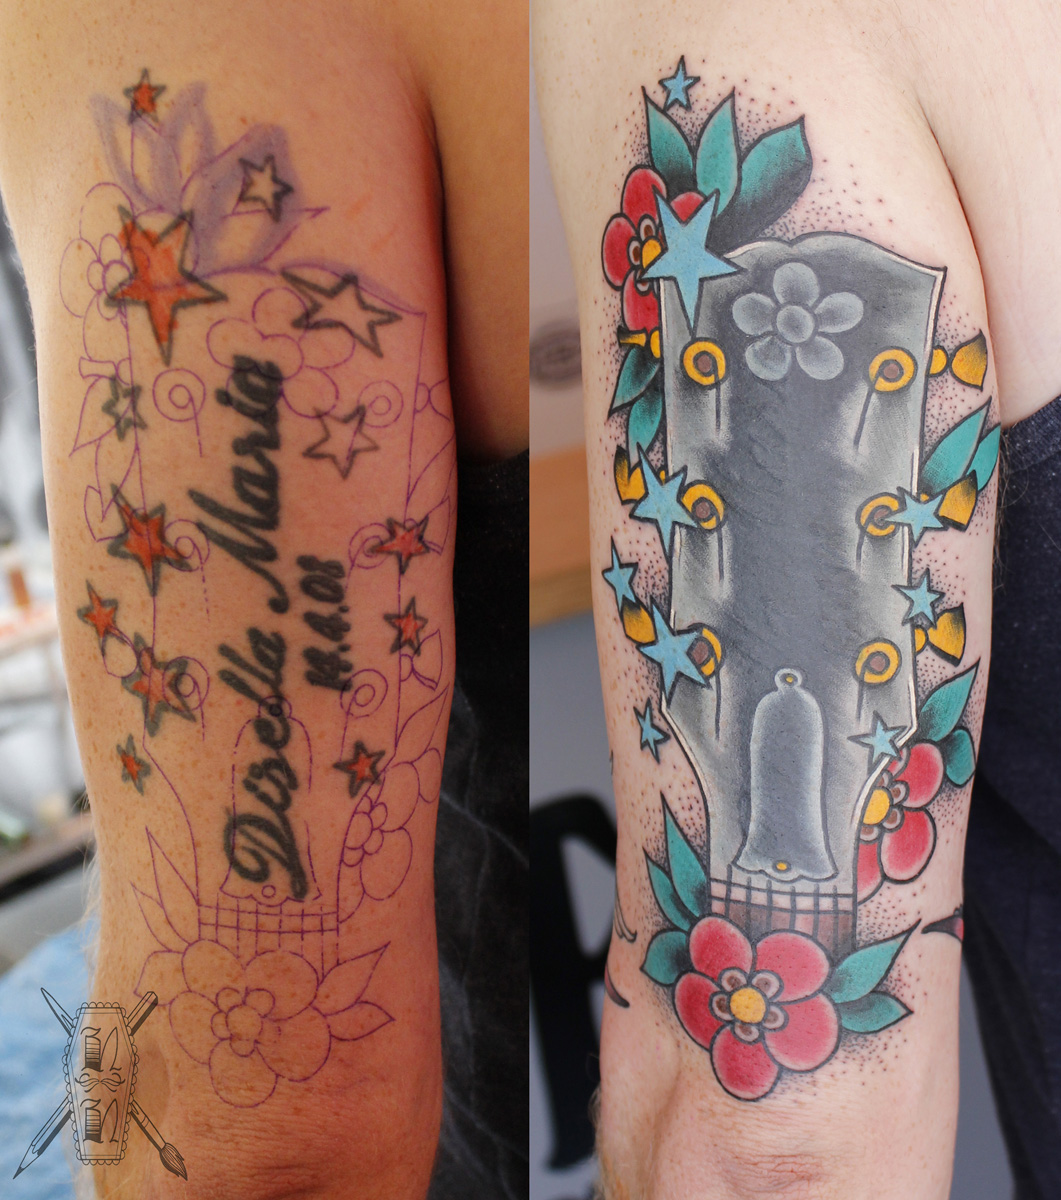 ivo_cover_up-9